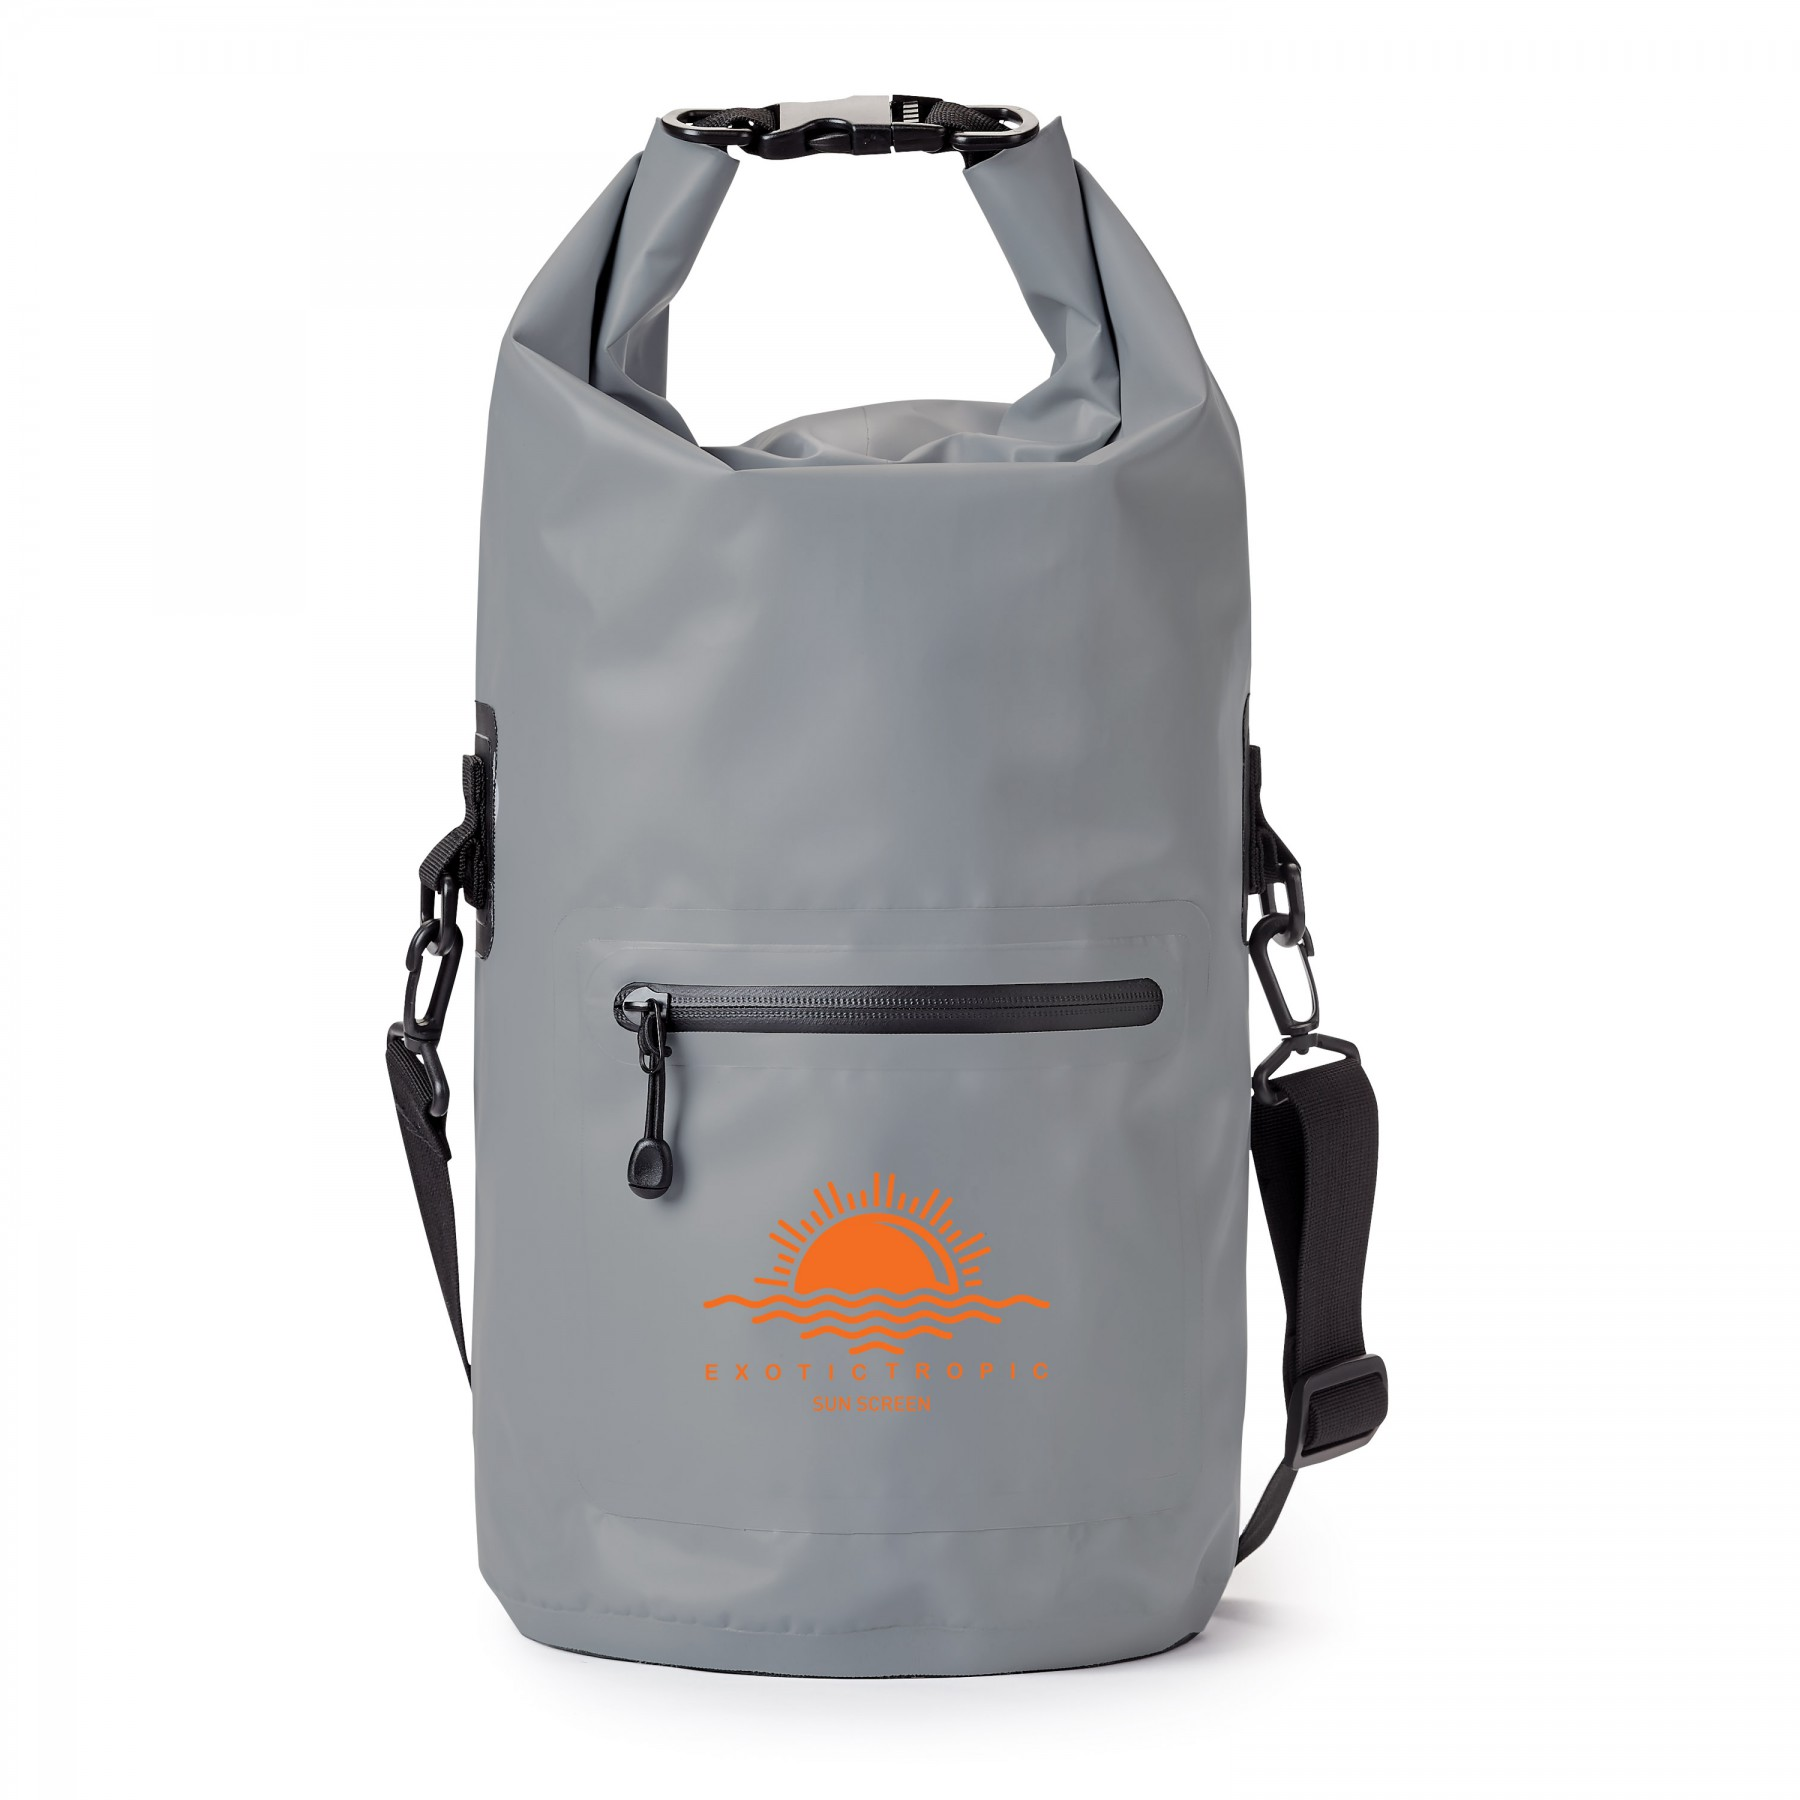 Call Of The Wild Waterproof 20l Drybag, BG702, One Colour Imprint